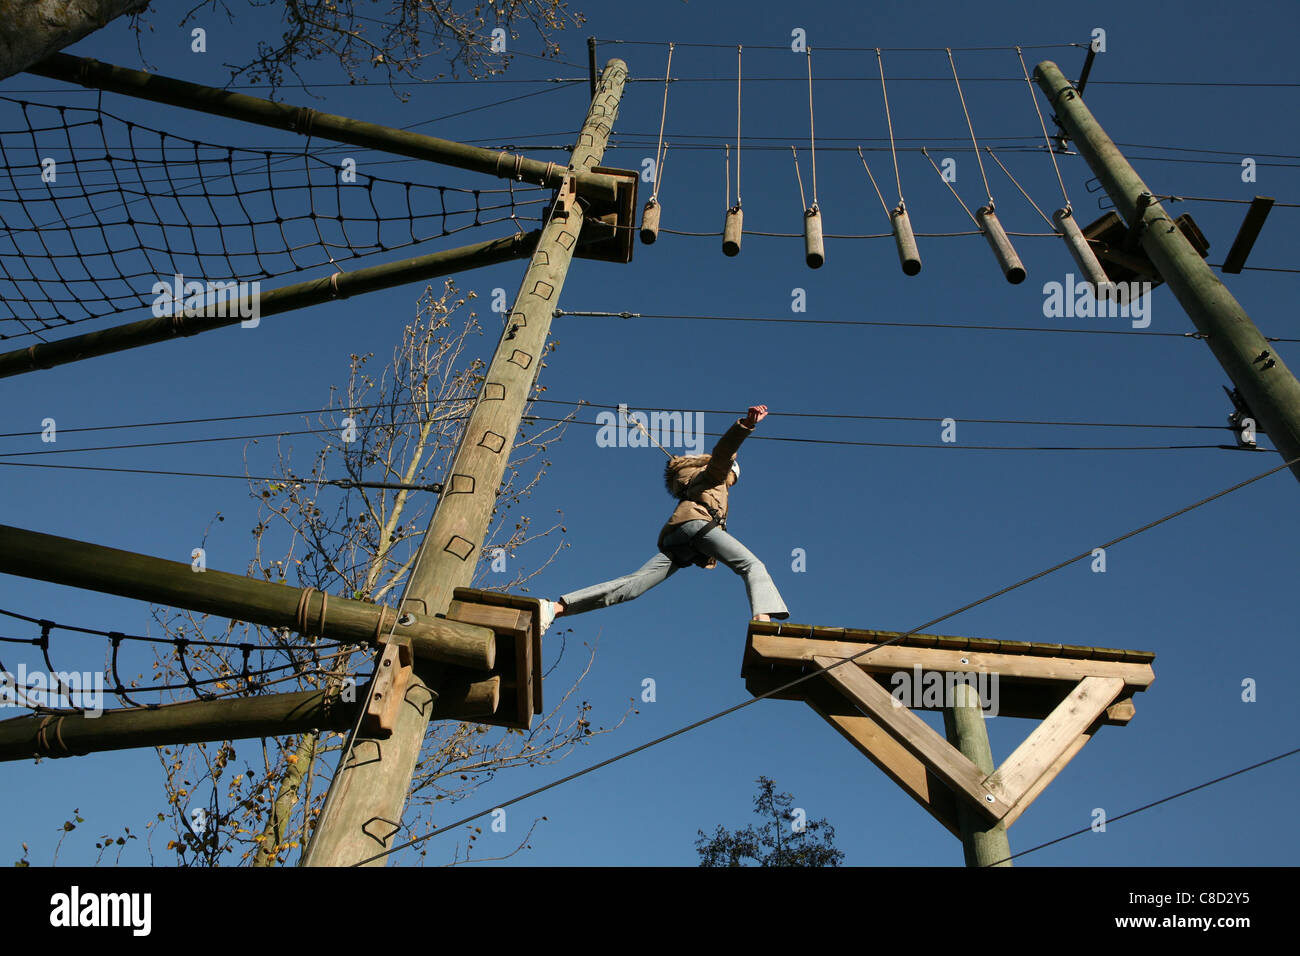 Aerial Extreme's High Ropes Adventure Courses at Willen Lake in Milton Keynes, England, UK. - Stock Image